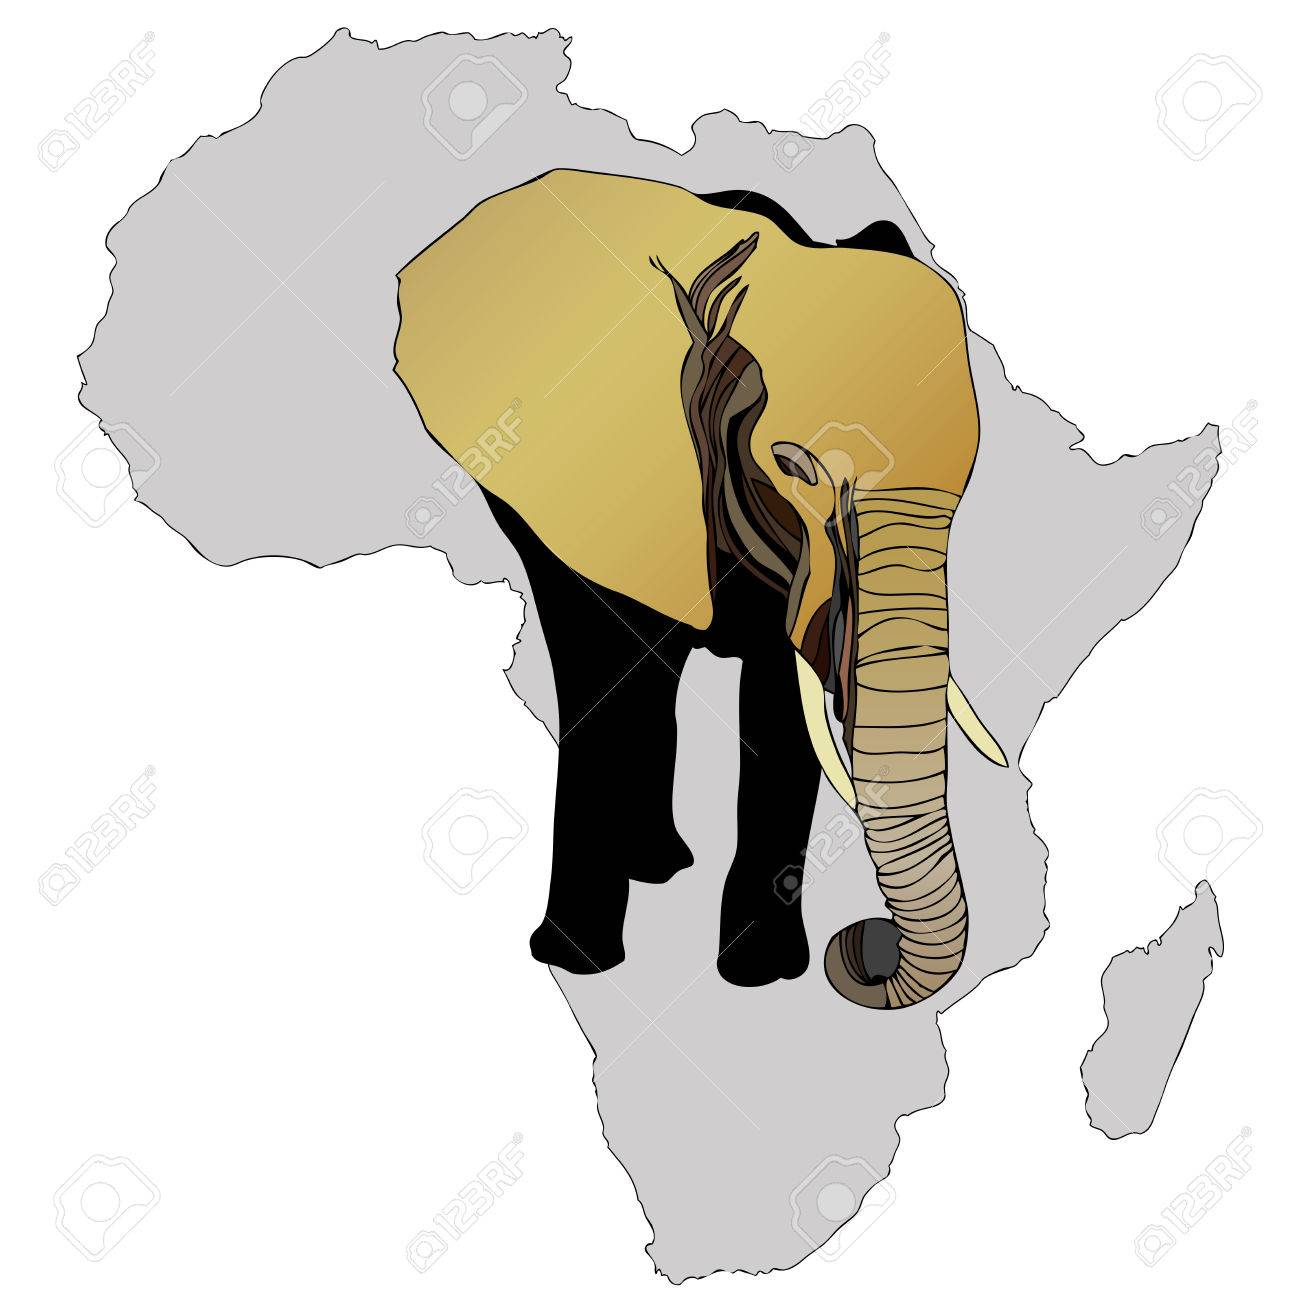 Symbolic illustration depicting an african elephant royalty free symbolic illustration depicting an african elephant stock vector 37089649 biocorpaavc Image collections